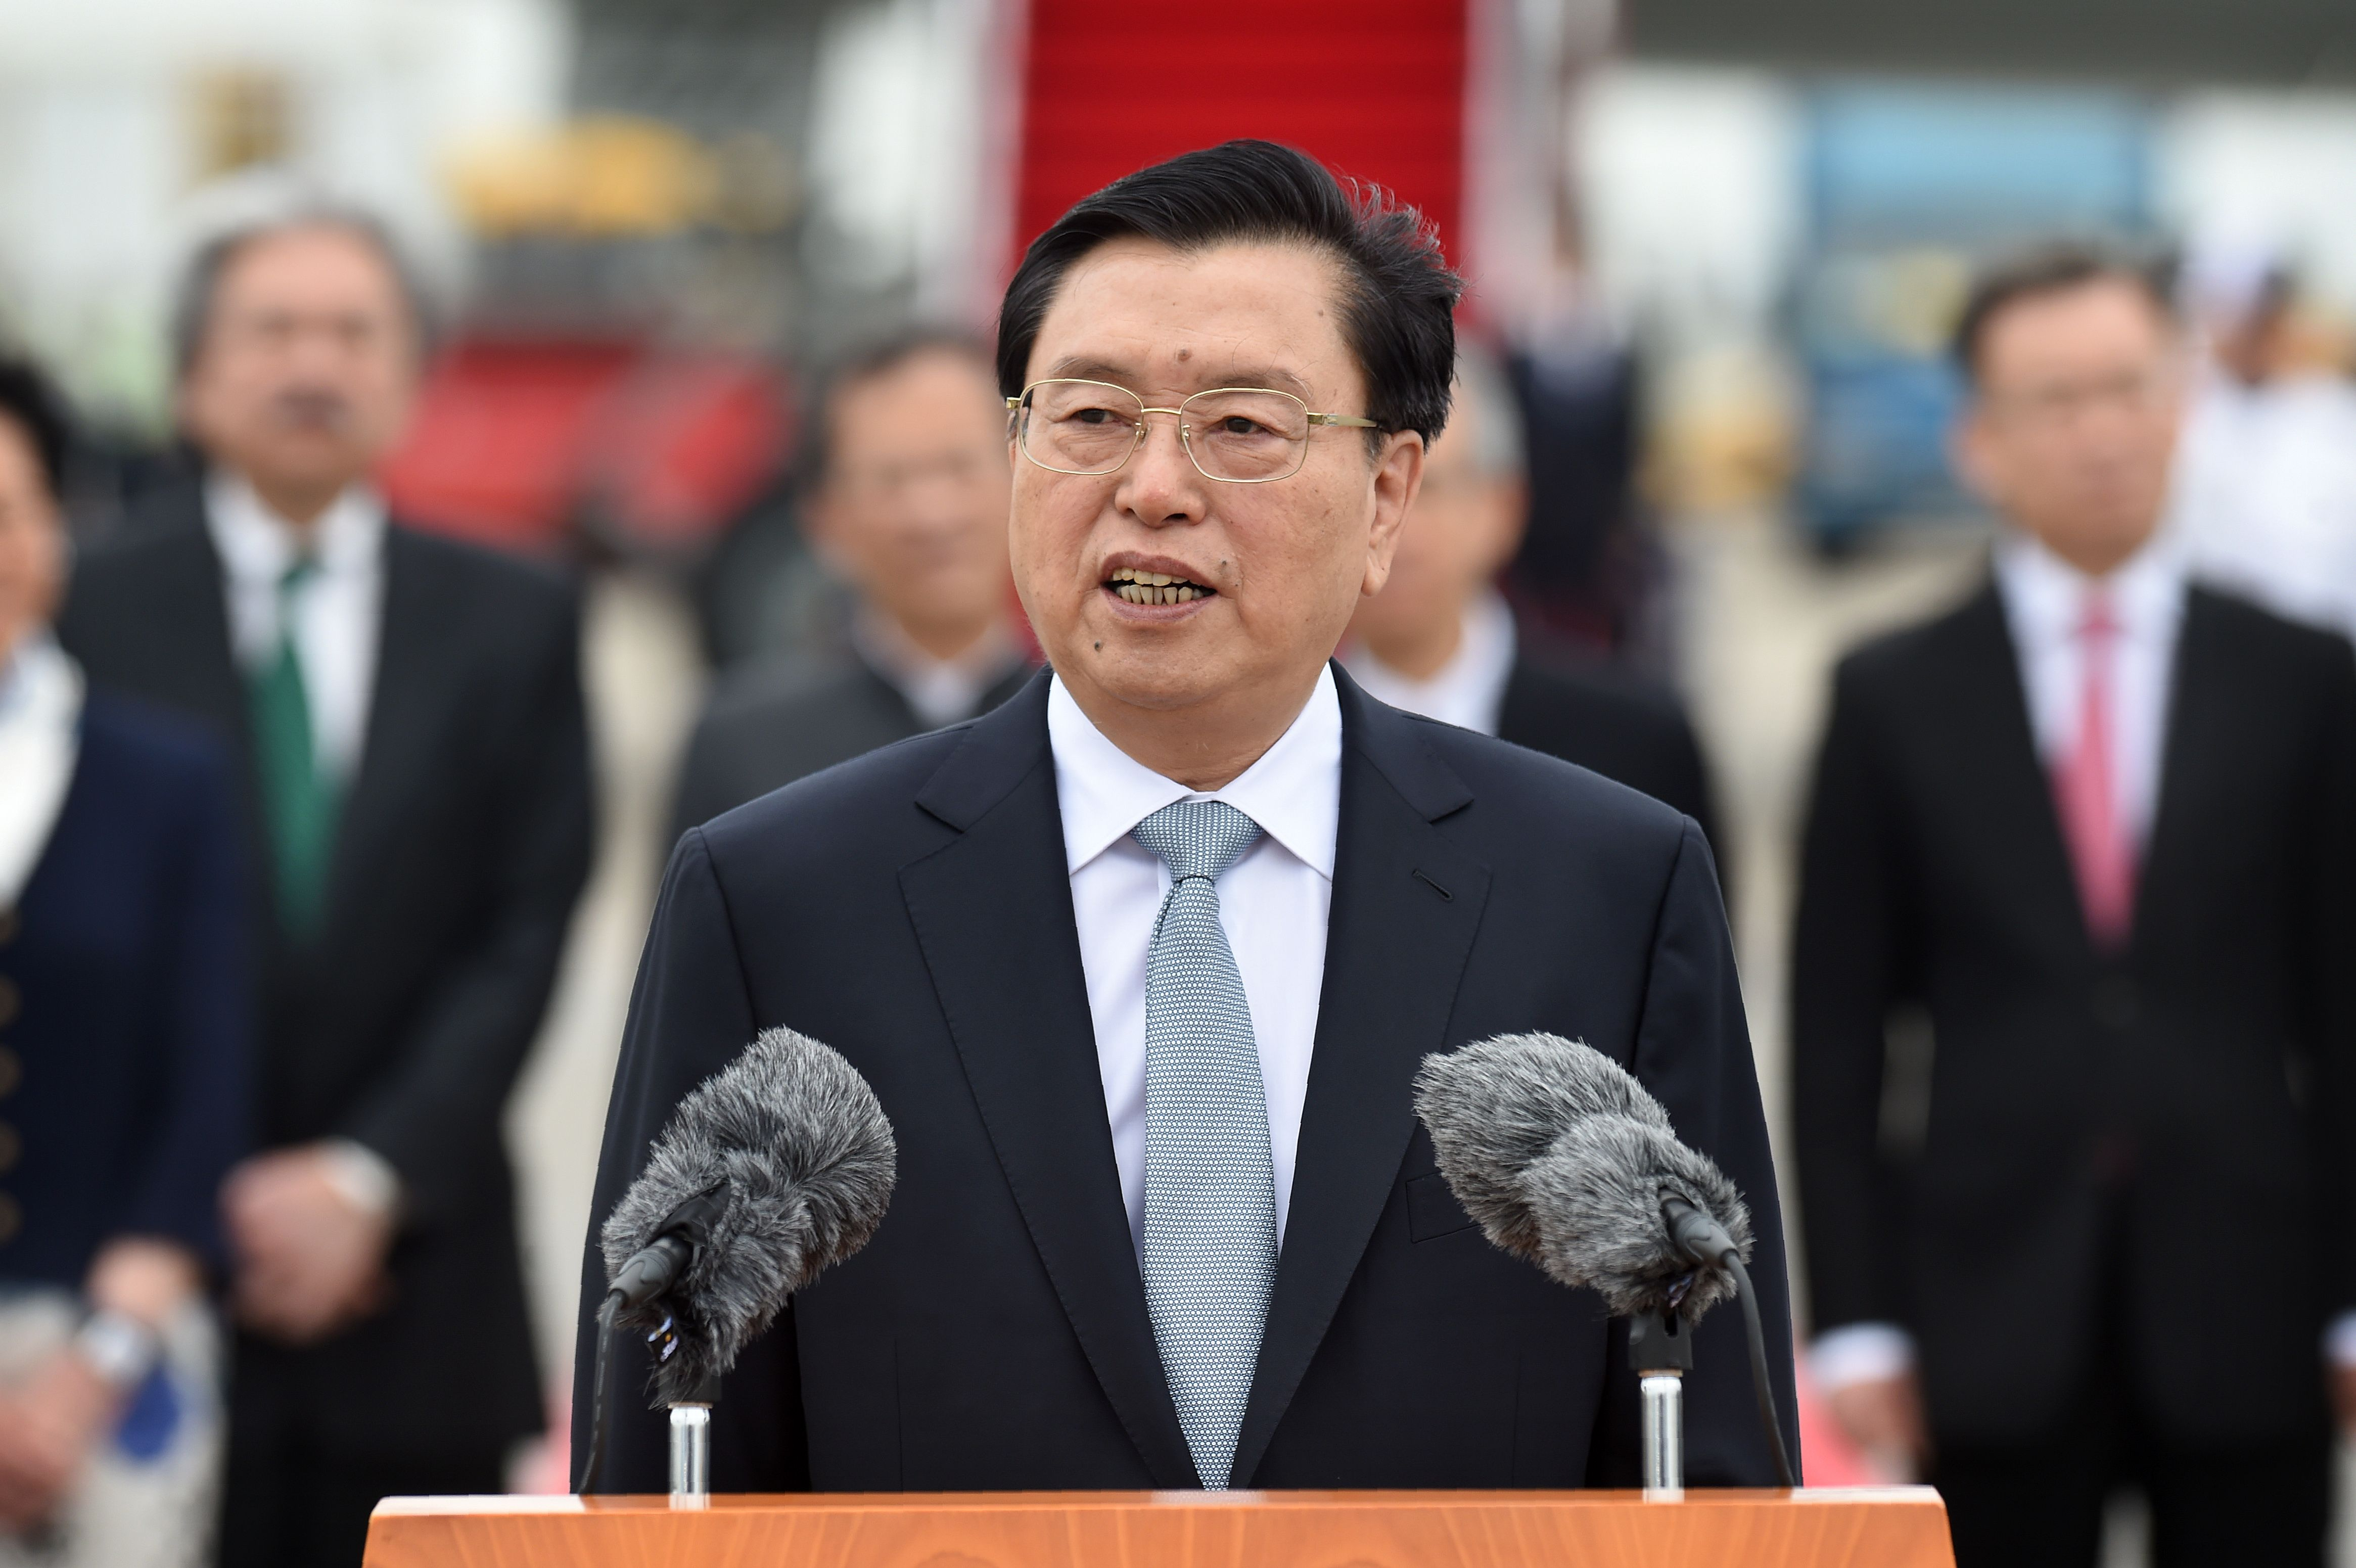 China's National People's Congress Standing Committee chairman Zhang Dejiang speaks to the media after arriving at Hong Kong's International Airport on May 17, 2016.